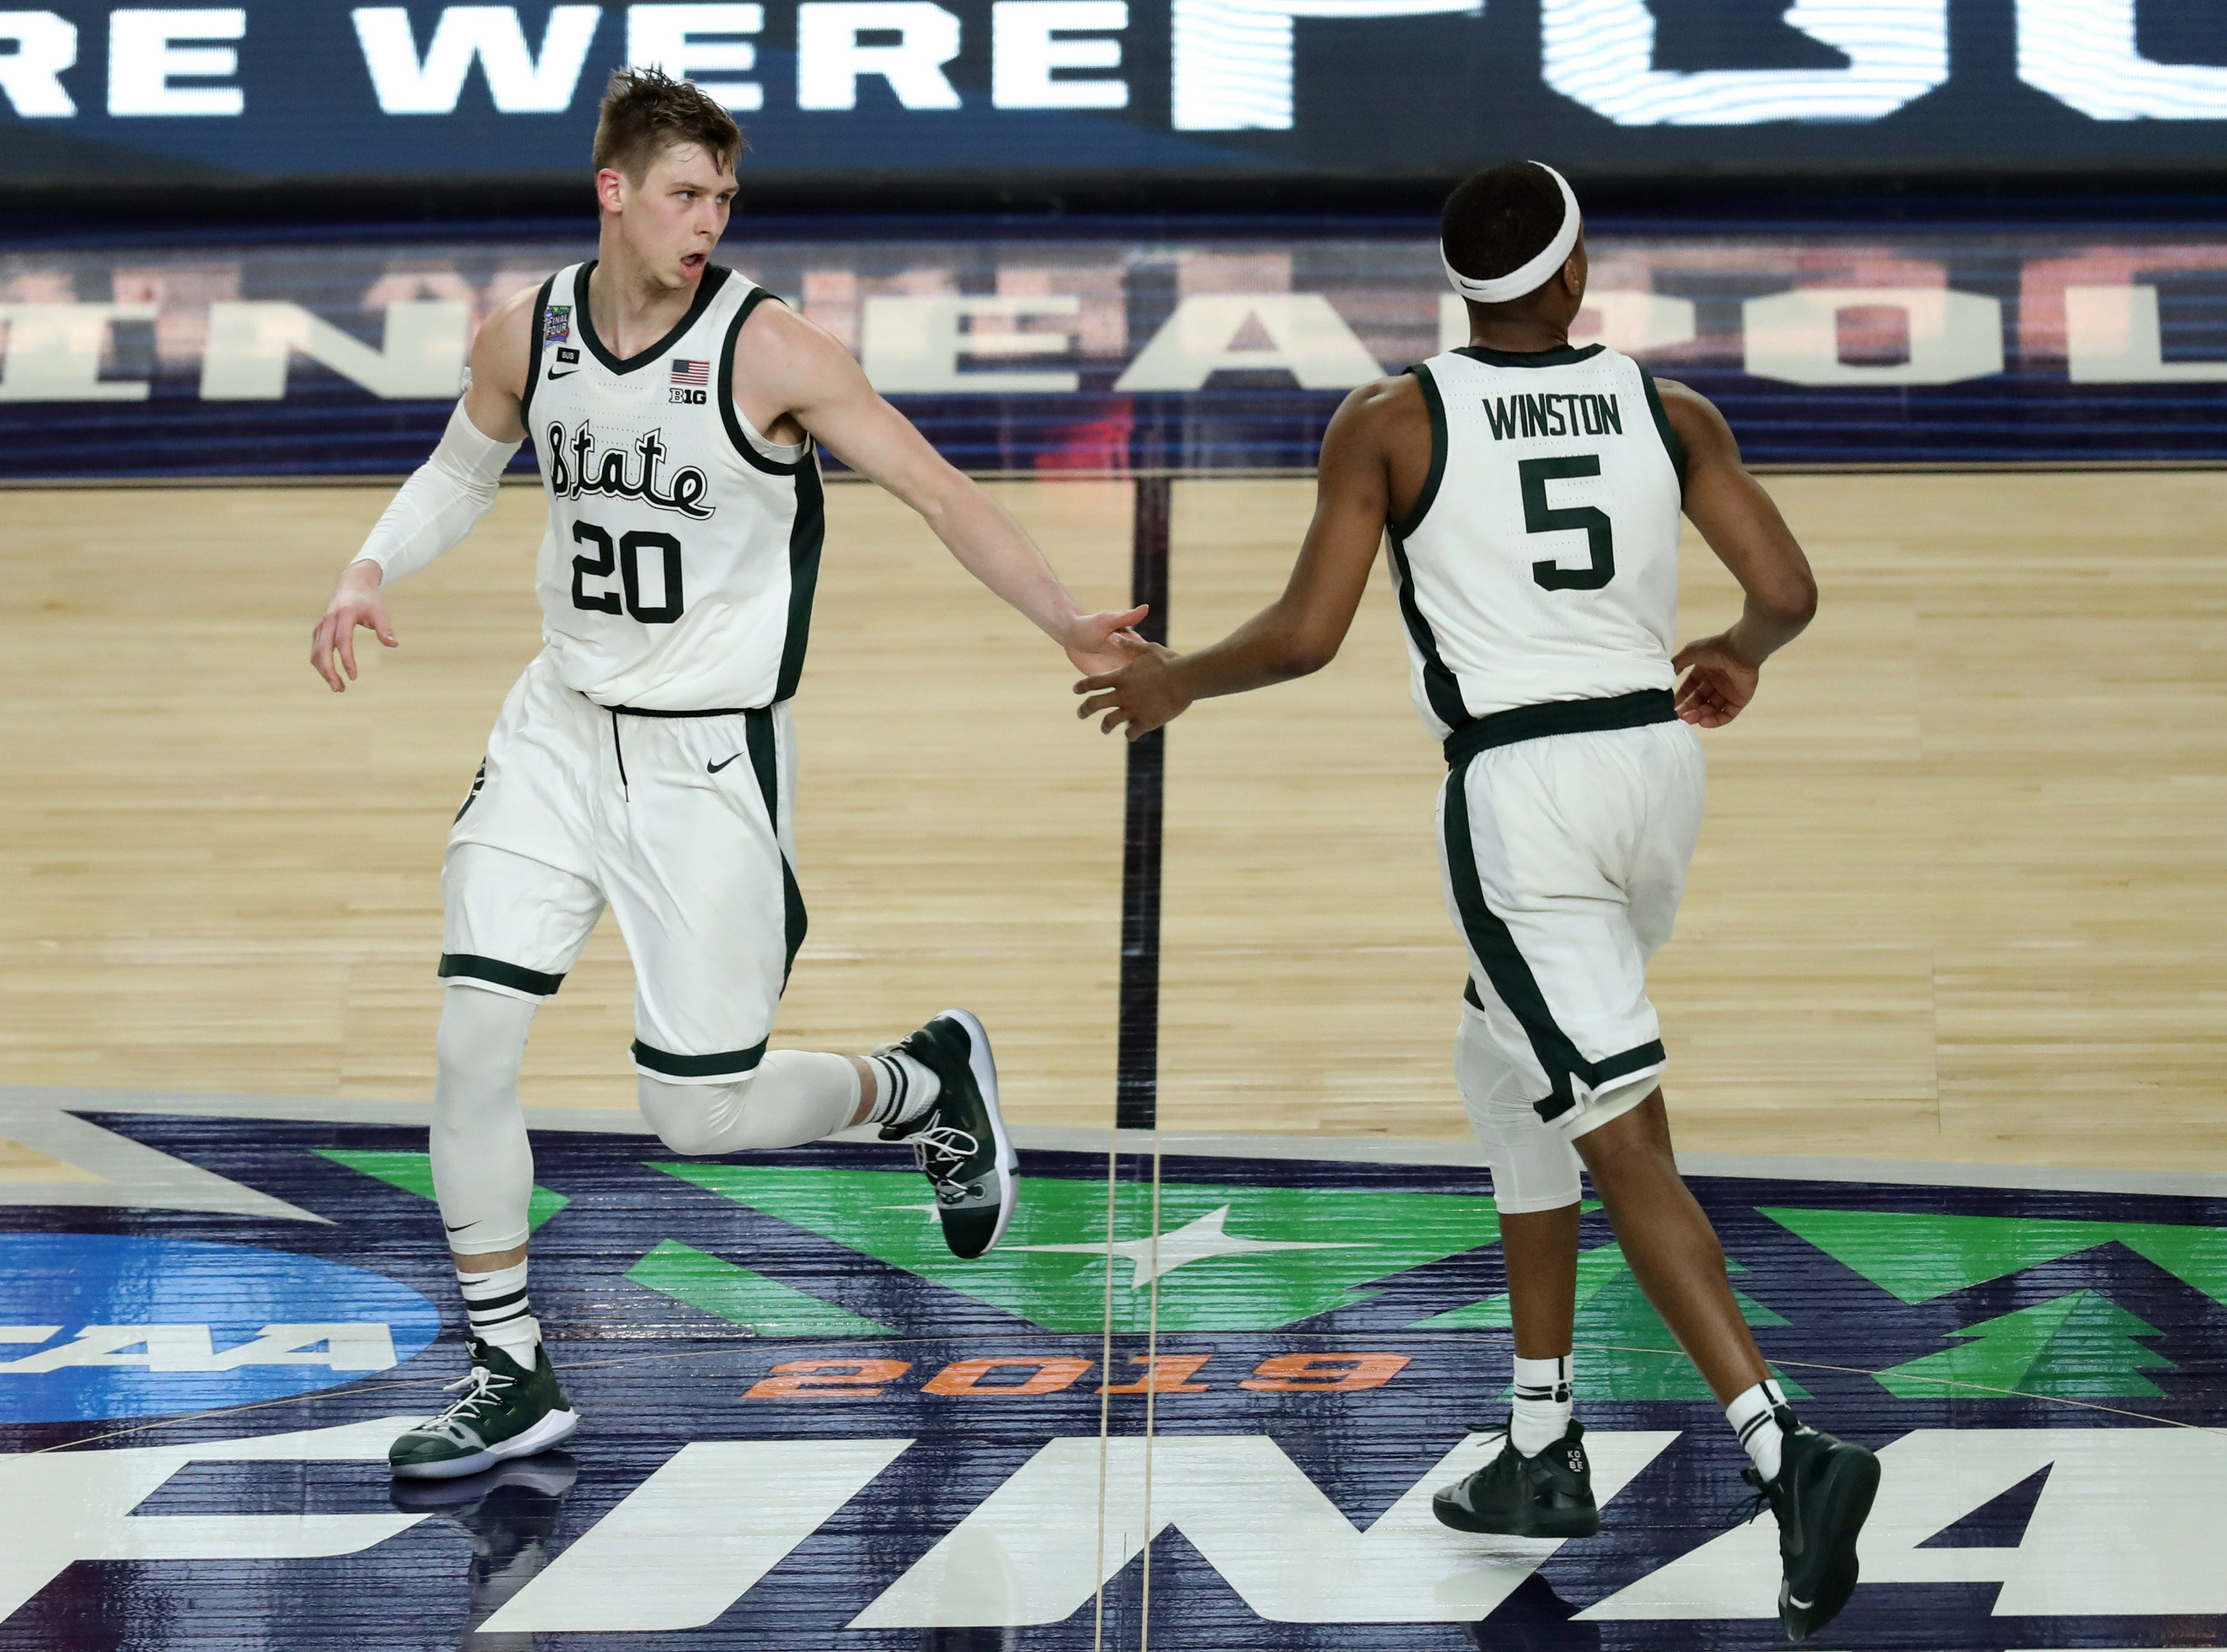 Apr 6, 2019; Minneapolis, MN, USA; Michigan State Spartans guard Matt McQuaid (20) and guard Cassius Winston (5) high five during the second half against the Texas Tech Red Raiders in the semifinals of the 2019 men's Final Four at US Bank Stadium. Mandatory Credit: Brace Hemmelgarn-USA TODAY Sports